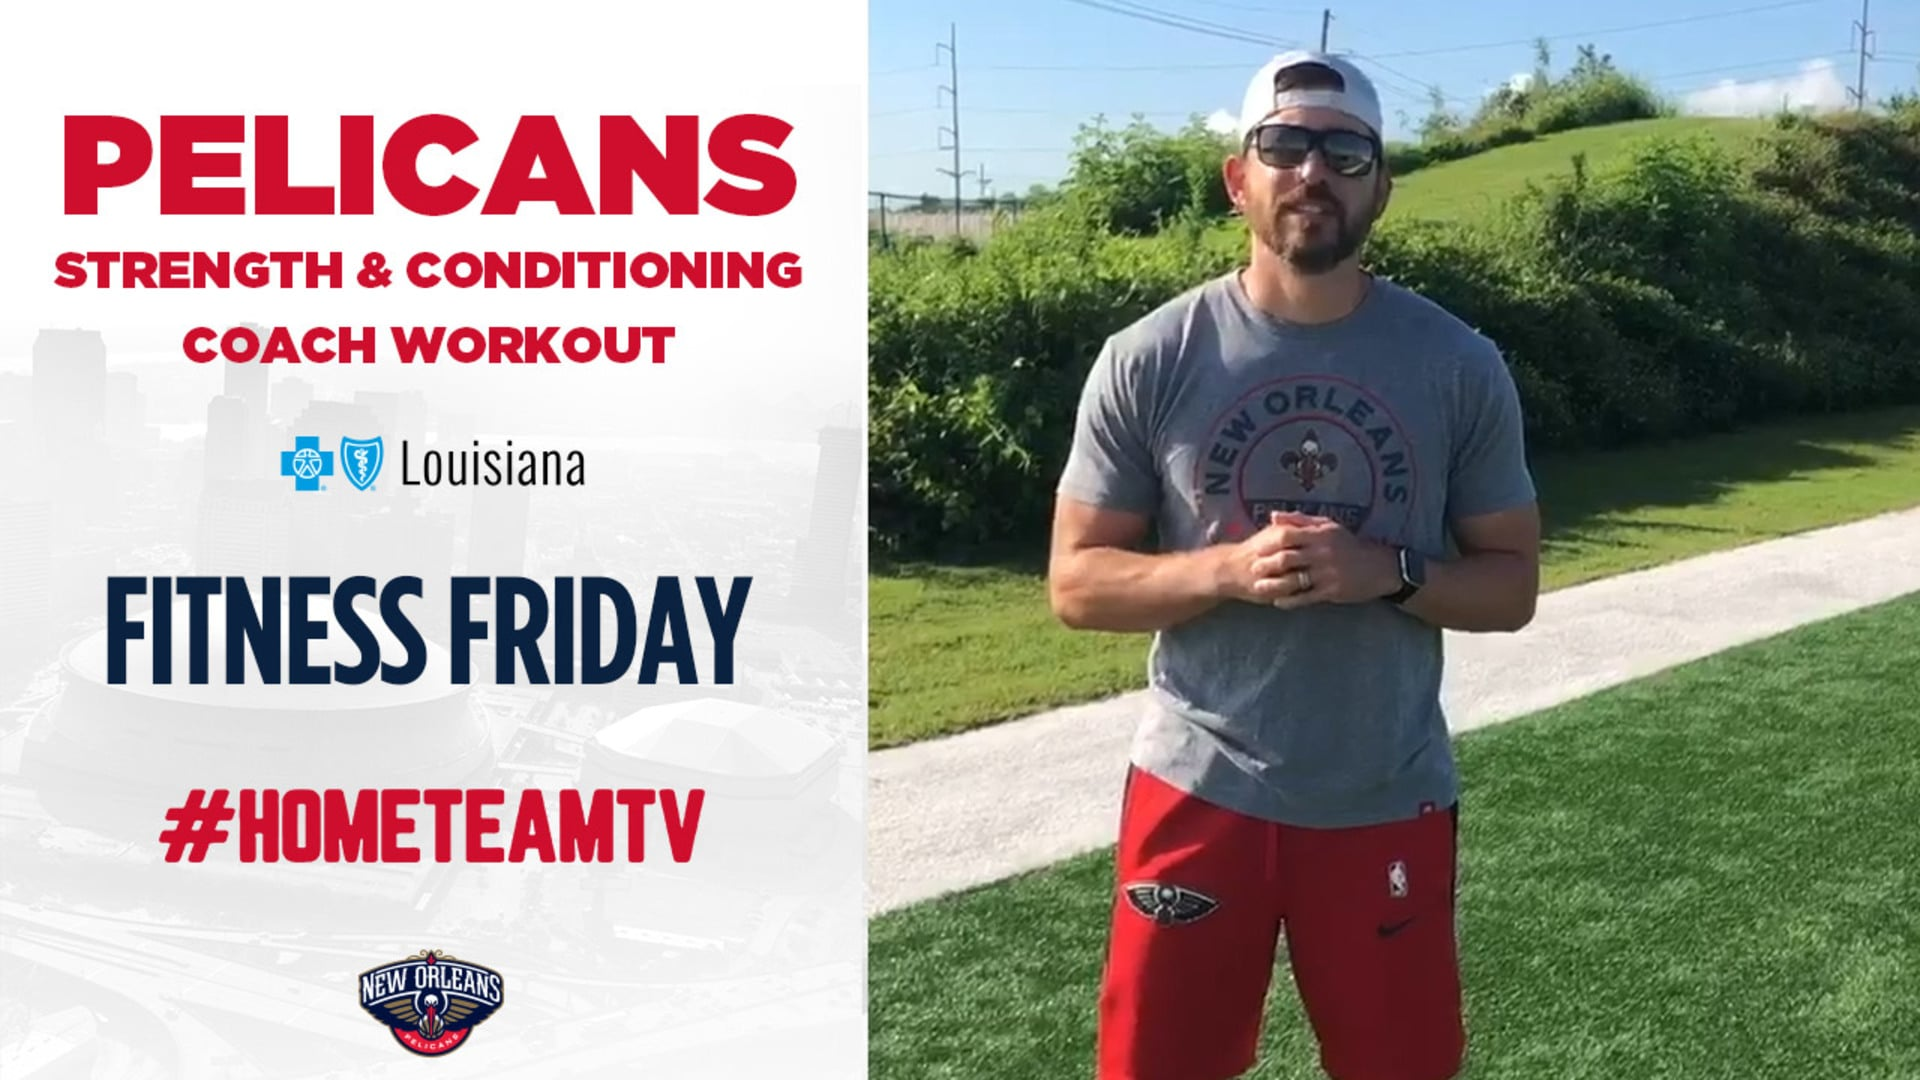 HomeTeamTV: Pelicans Strength & Conditioning Coach on Fitness Friday, 6/5/20